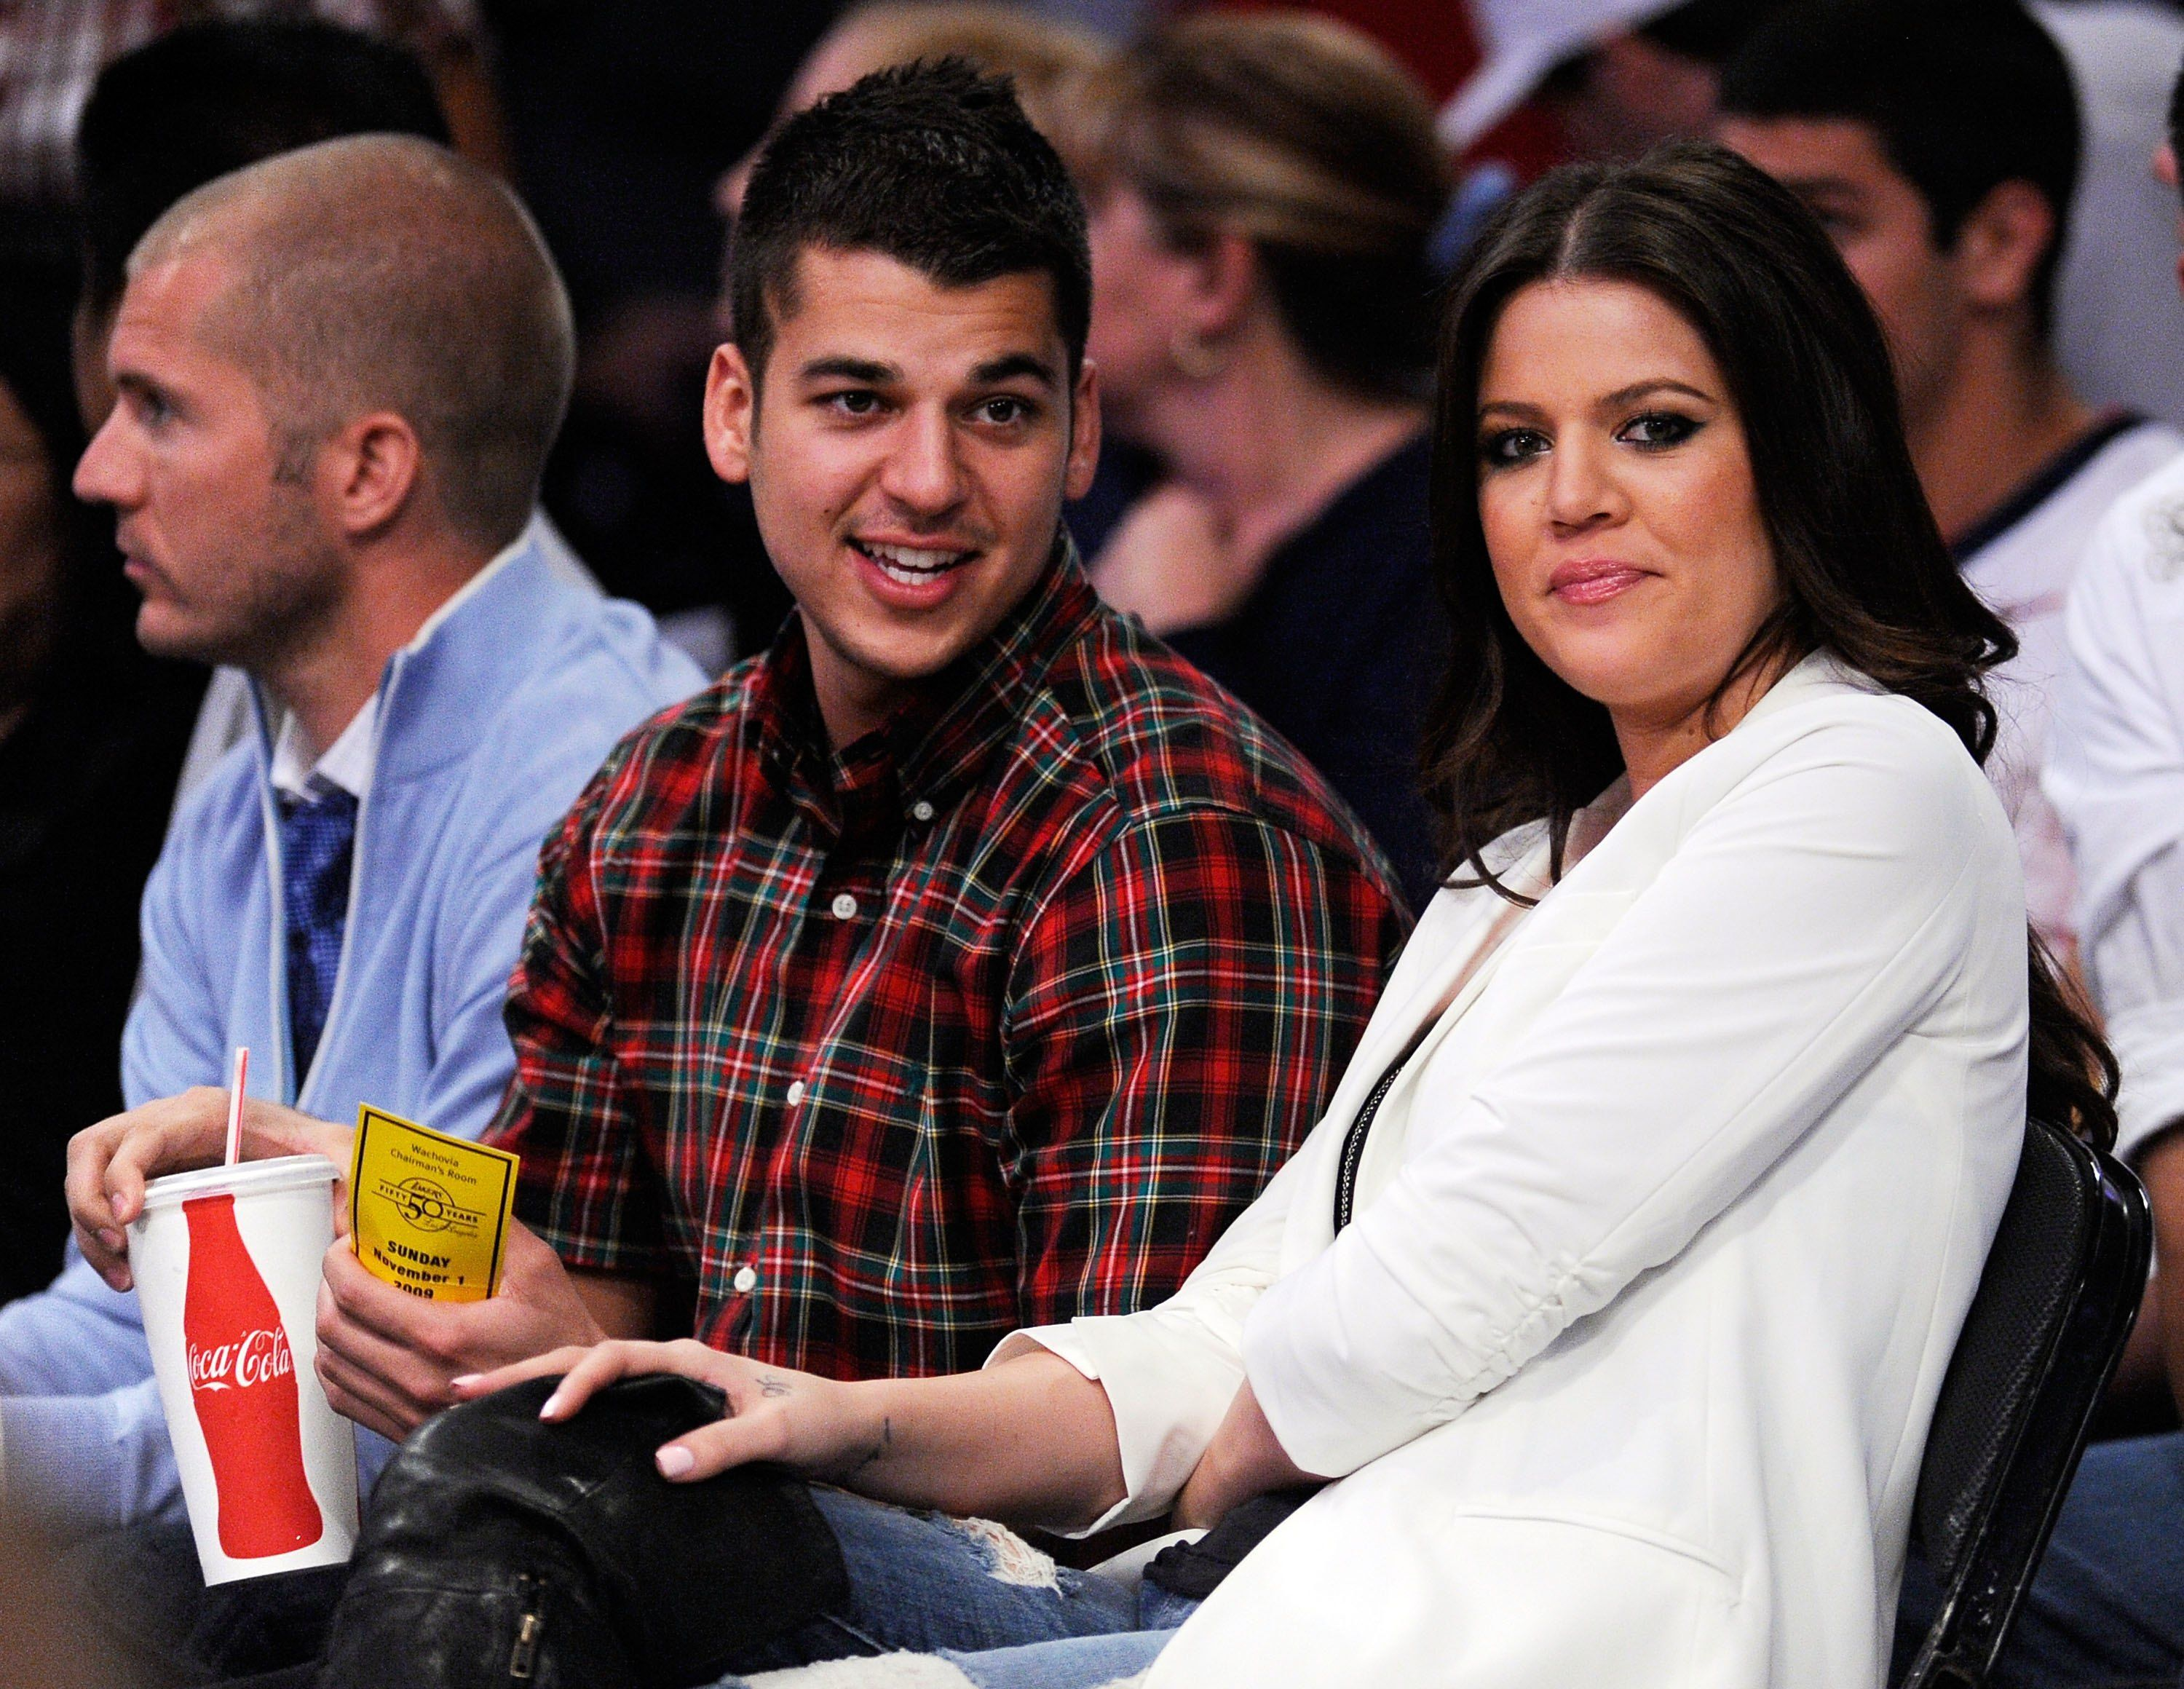 Rob and Khloé Kardashian at a Lakers/ Atlanta Hawks game at Staples Center in November 2009 / Source: Getty Images